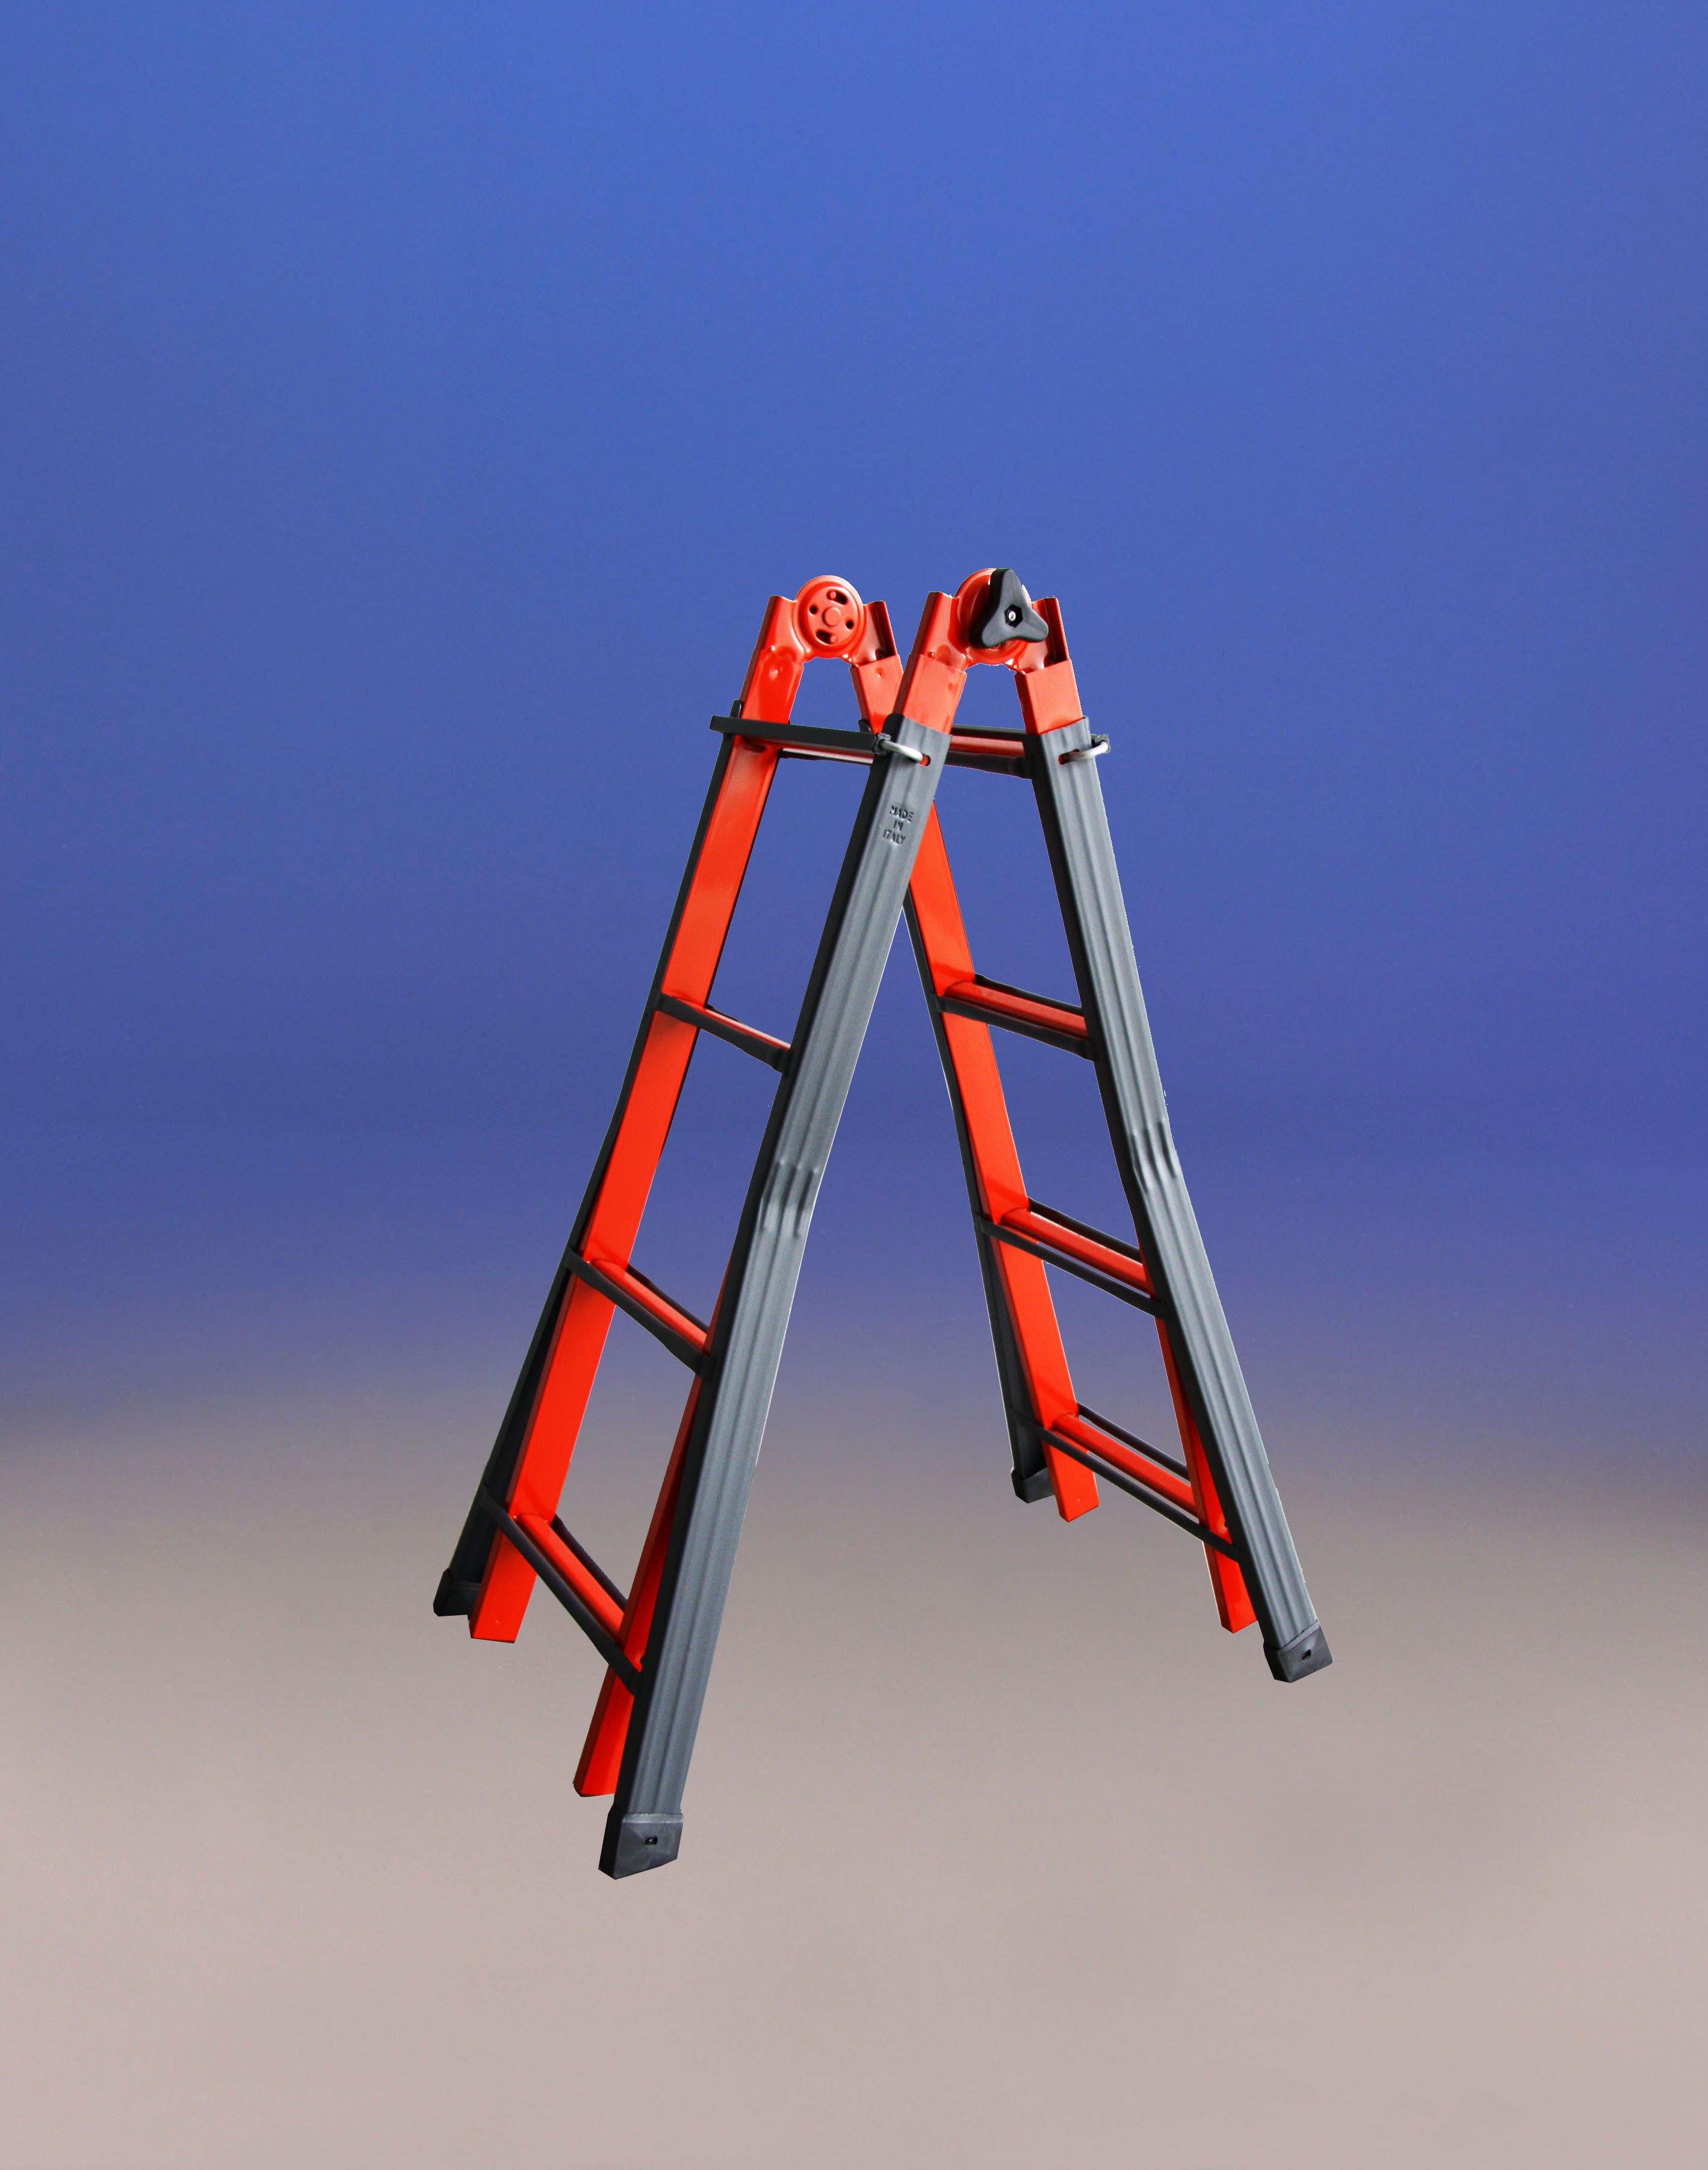 DIY and light duty ladders